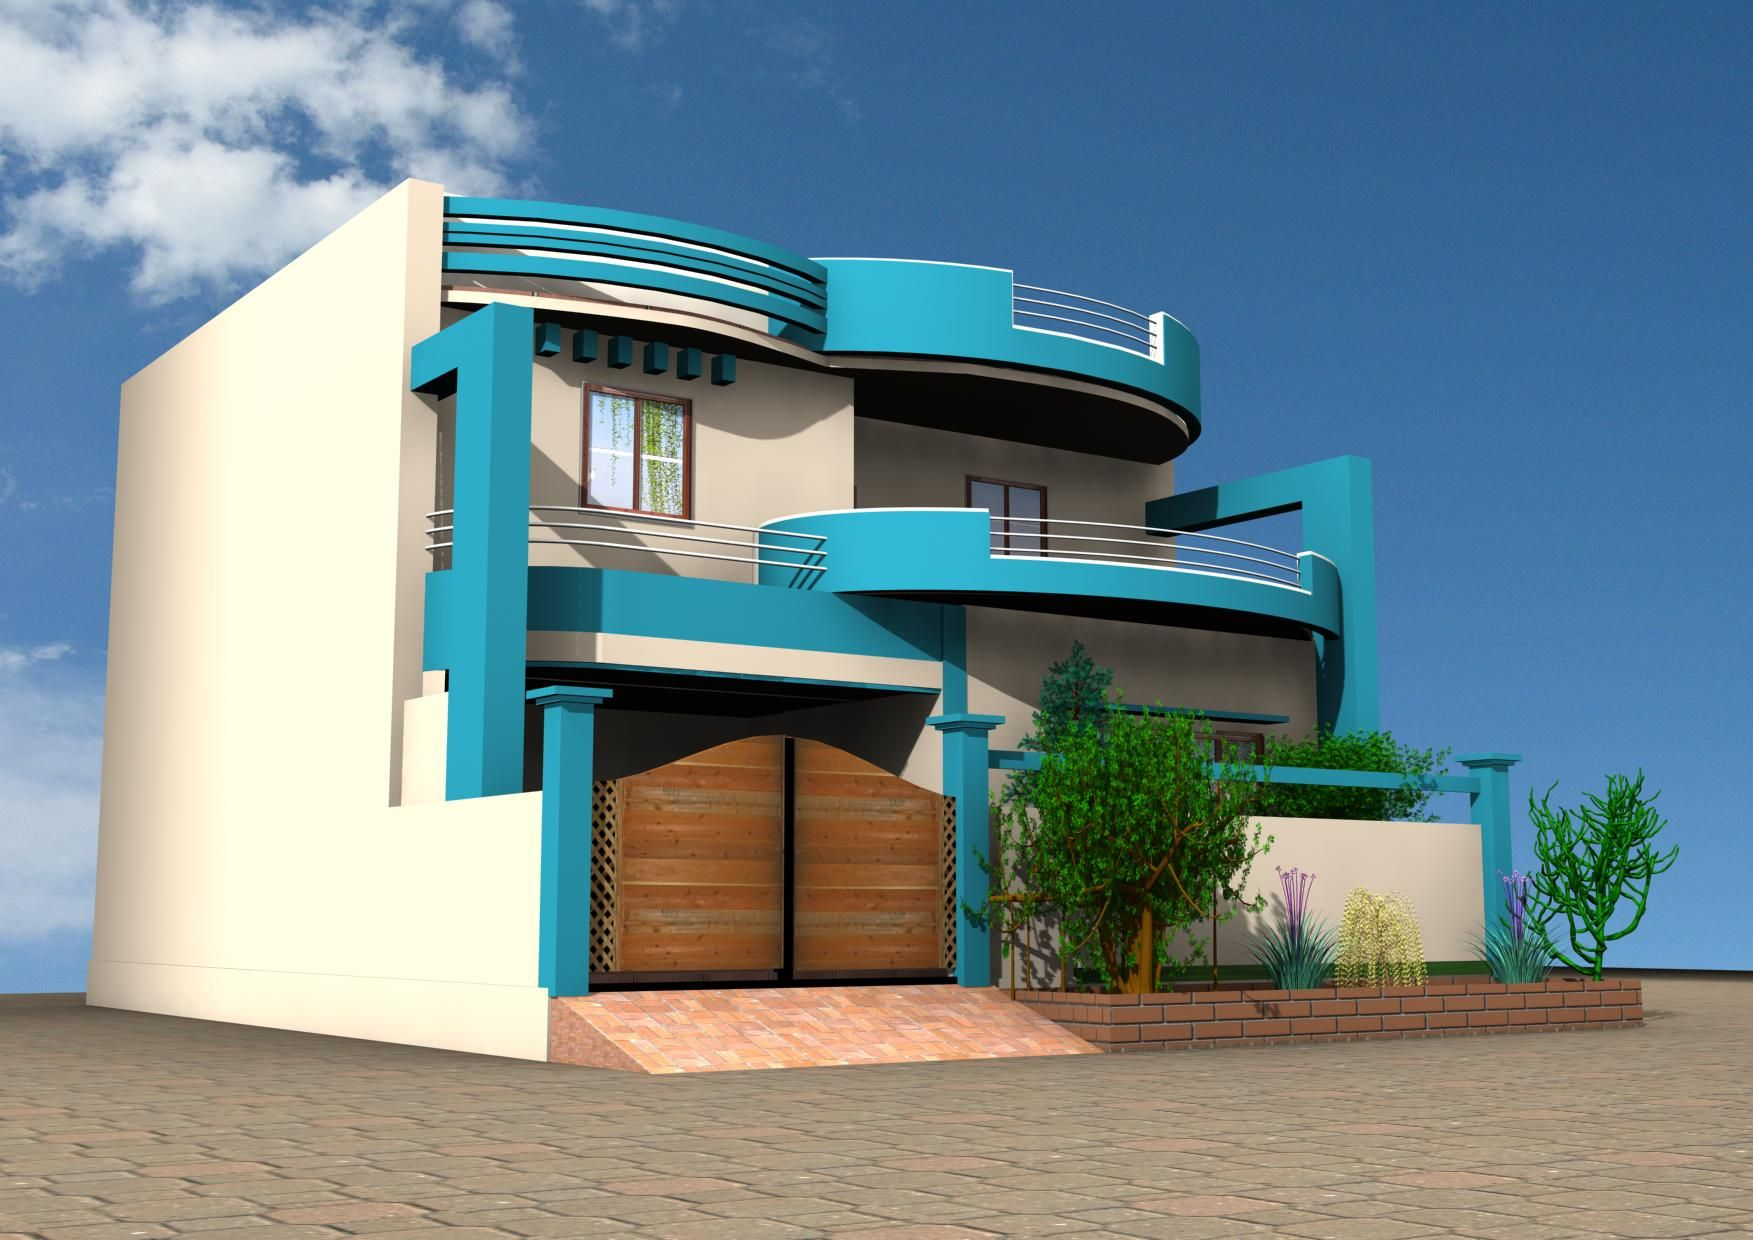 3d home design images hd 1080p 3d home design software online